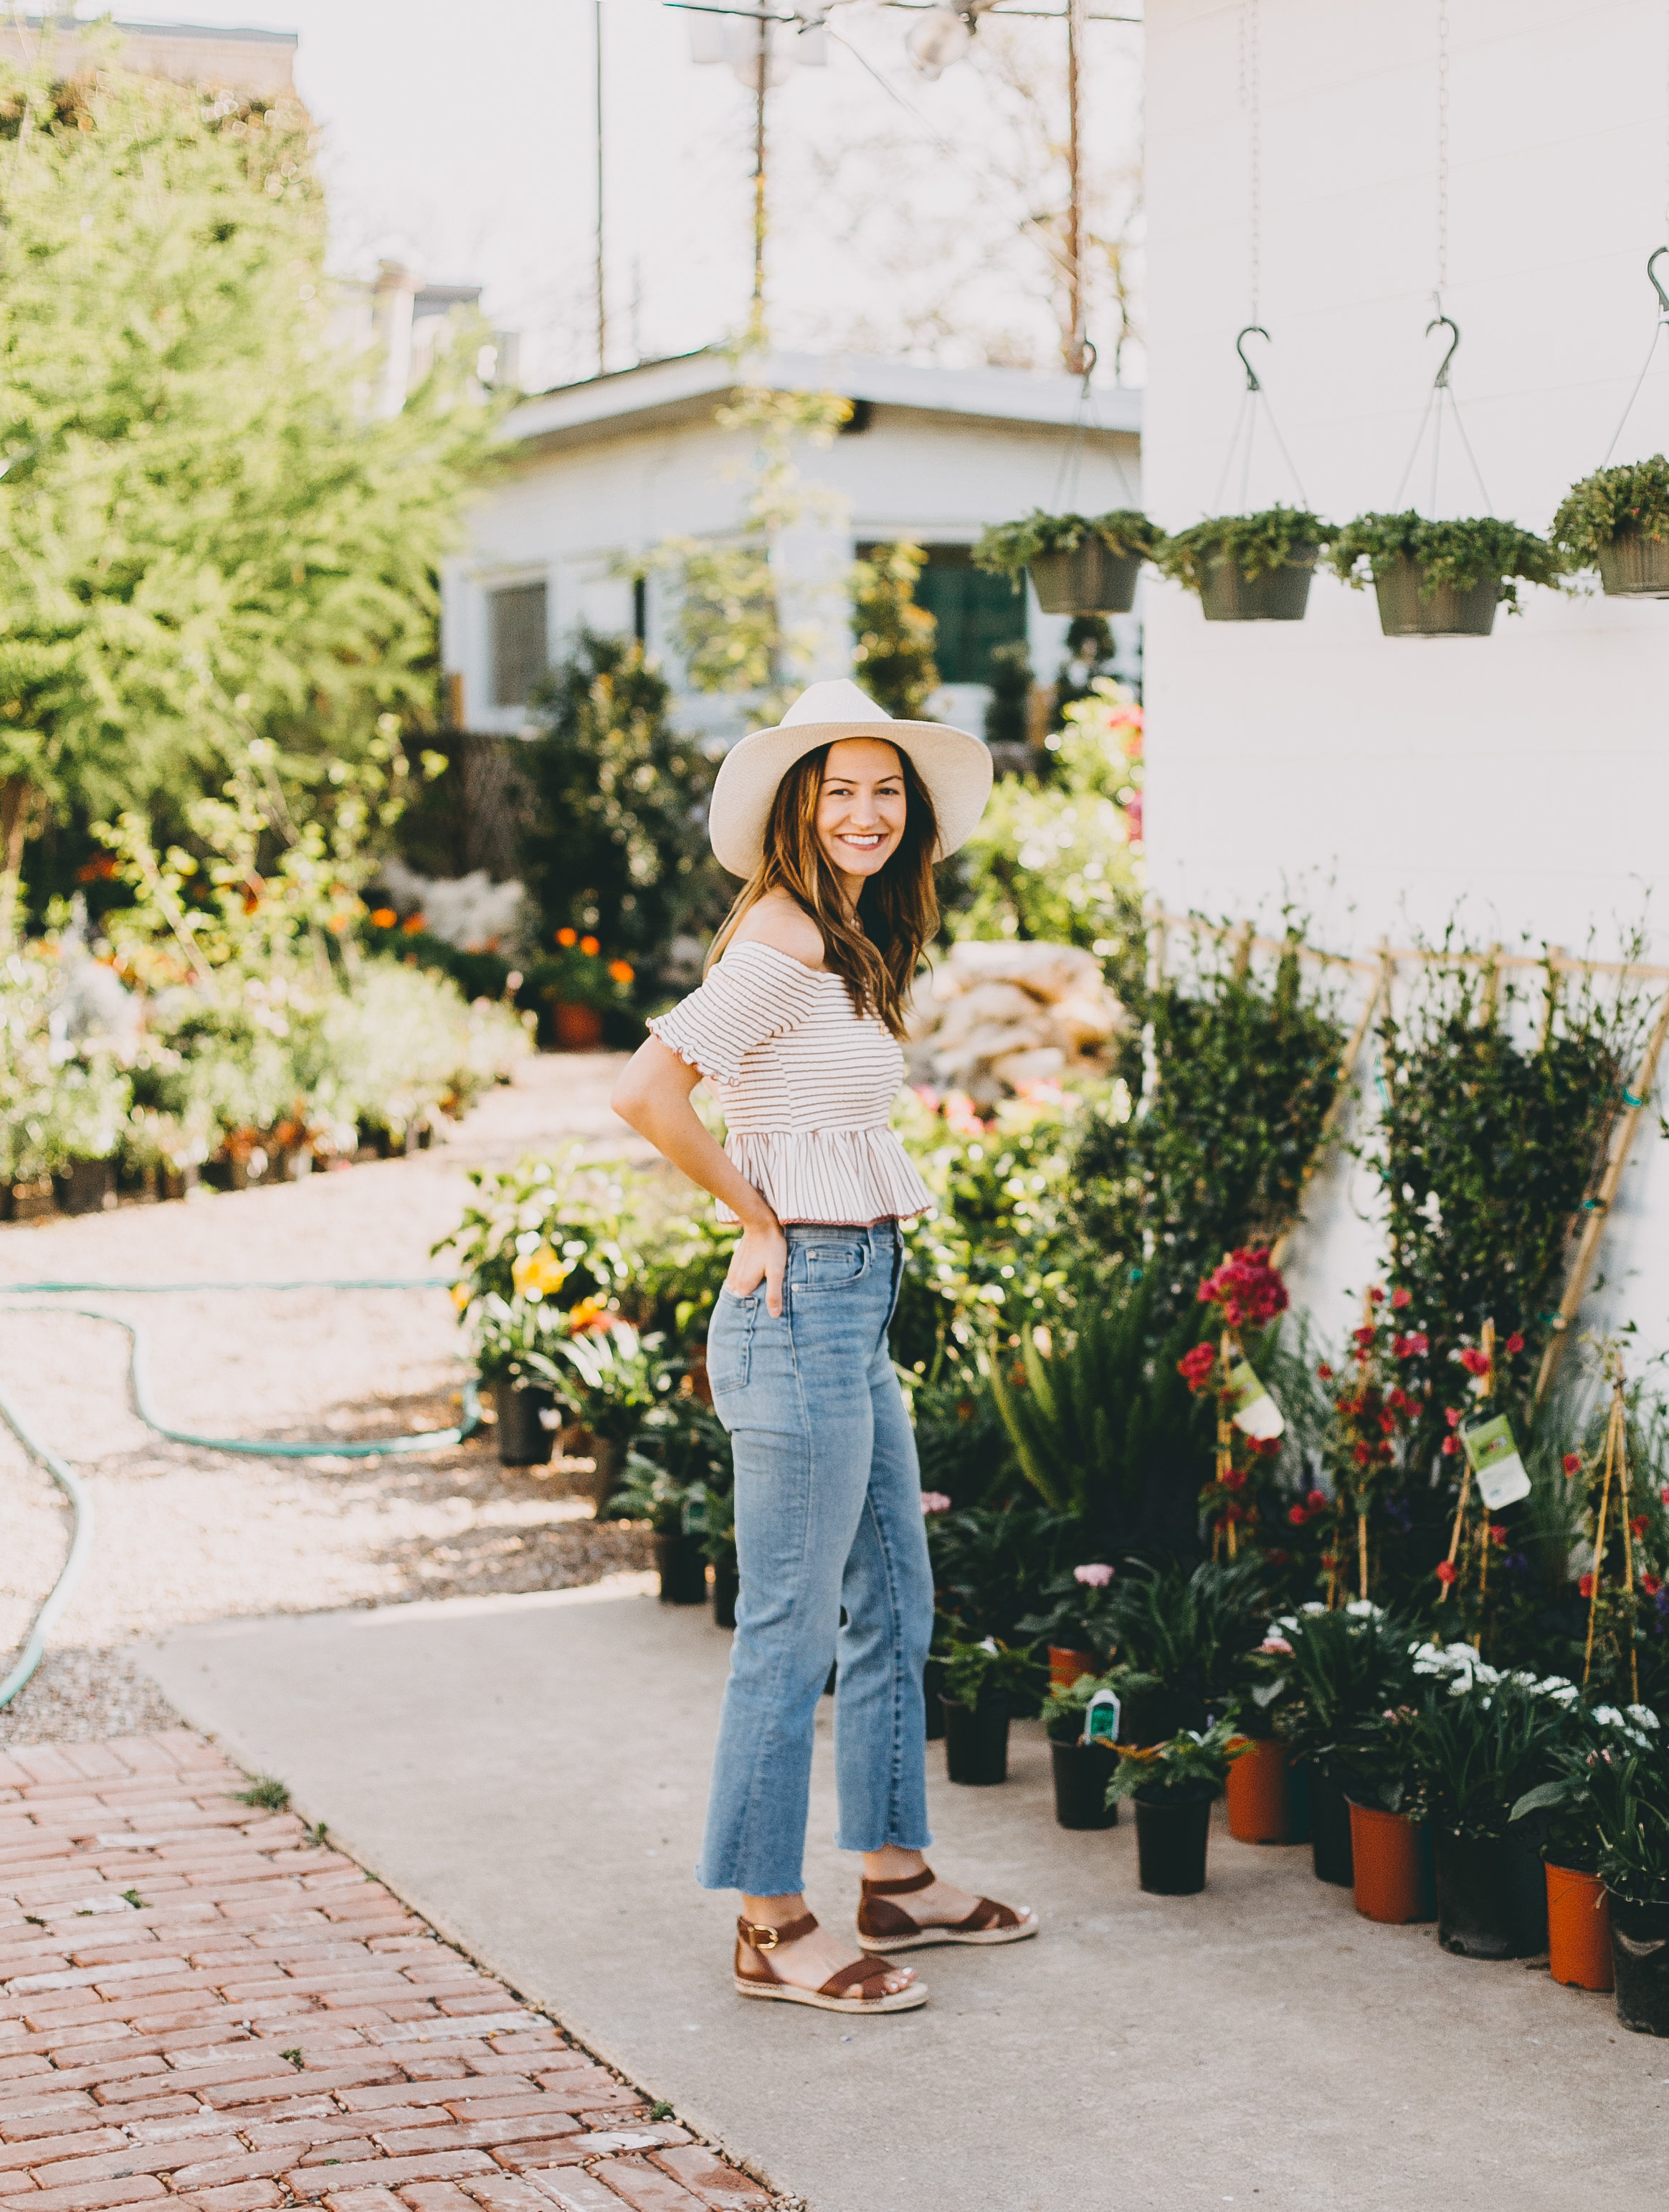 olivia-watson-austin-texas-fashion-lifestyle-blogger-plant-flower-shop-sole-society-espadrille-sandals-7